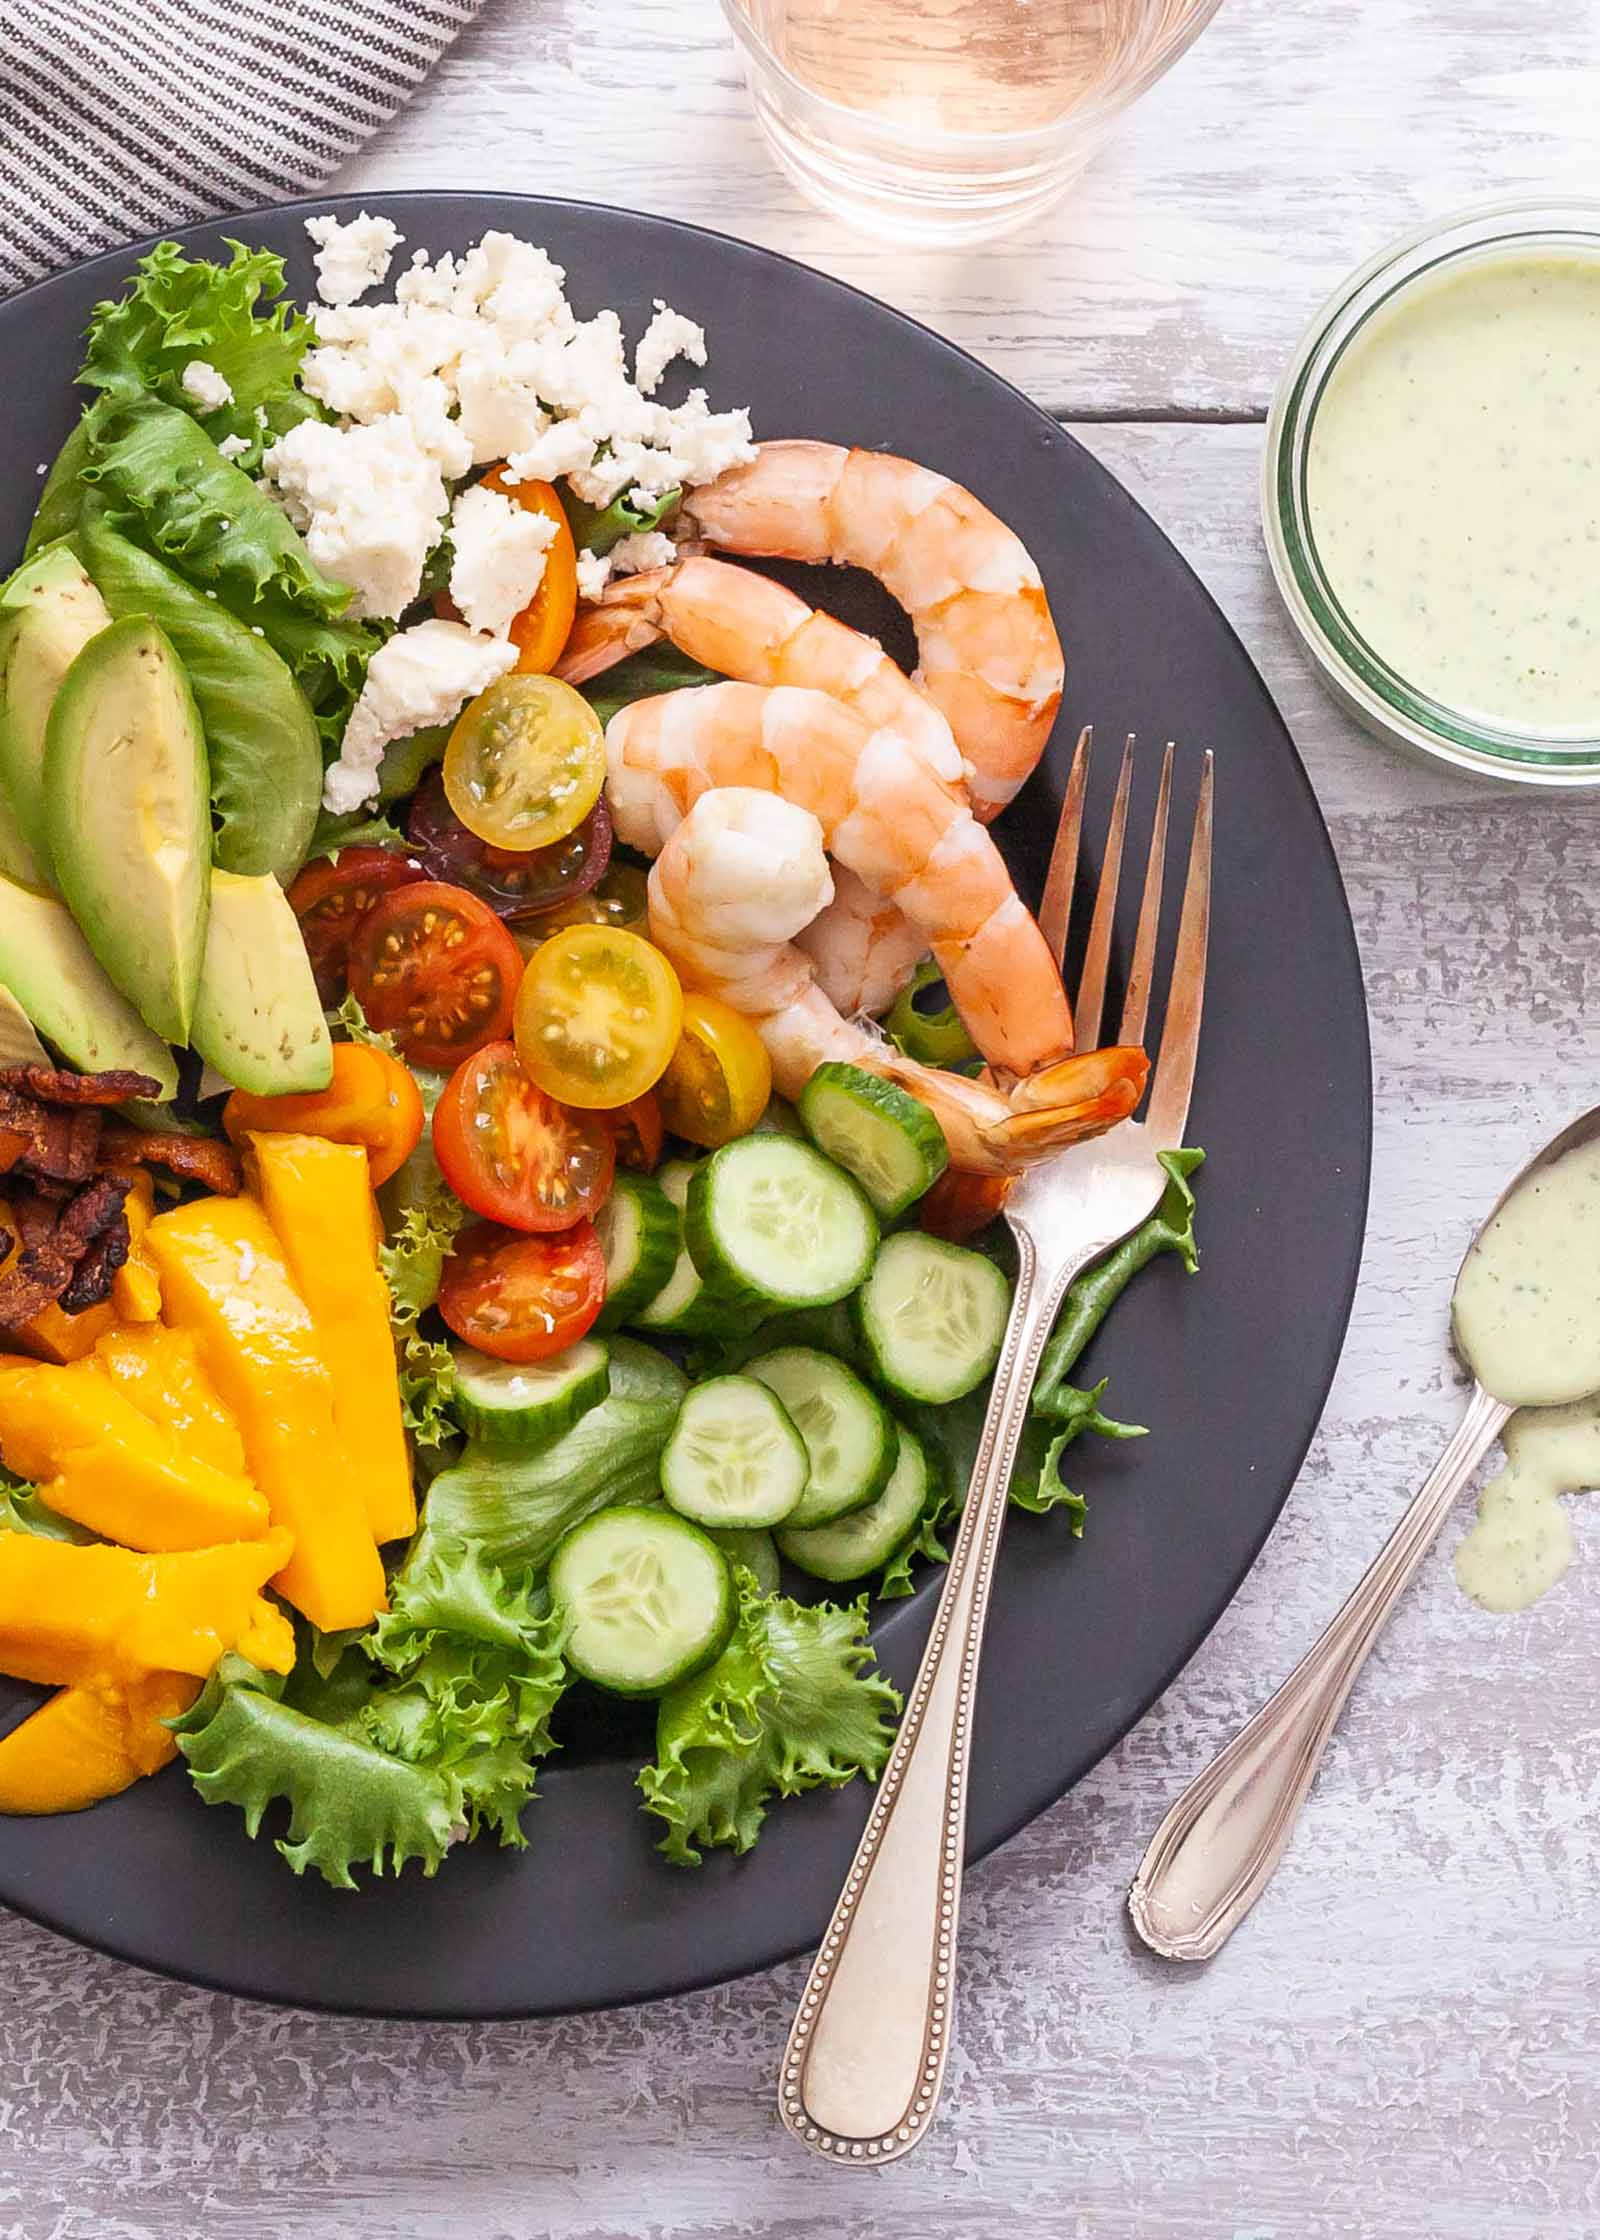 How to Make a Cobb Salad - shrimp and vegetables on gray plate with glass of rose